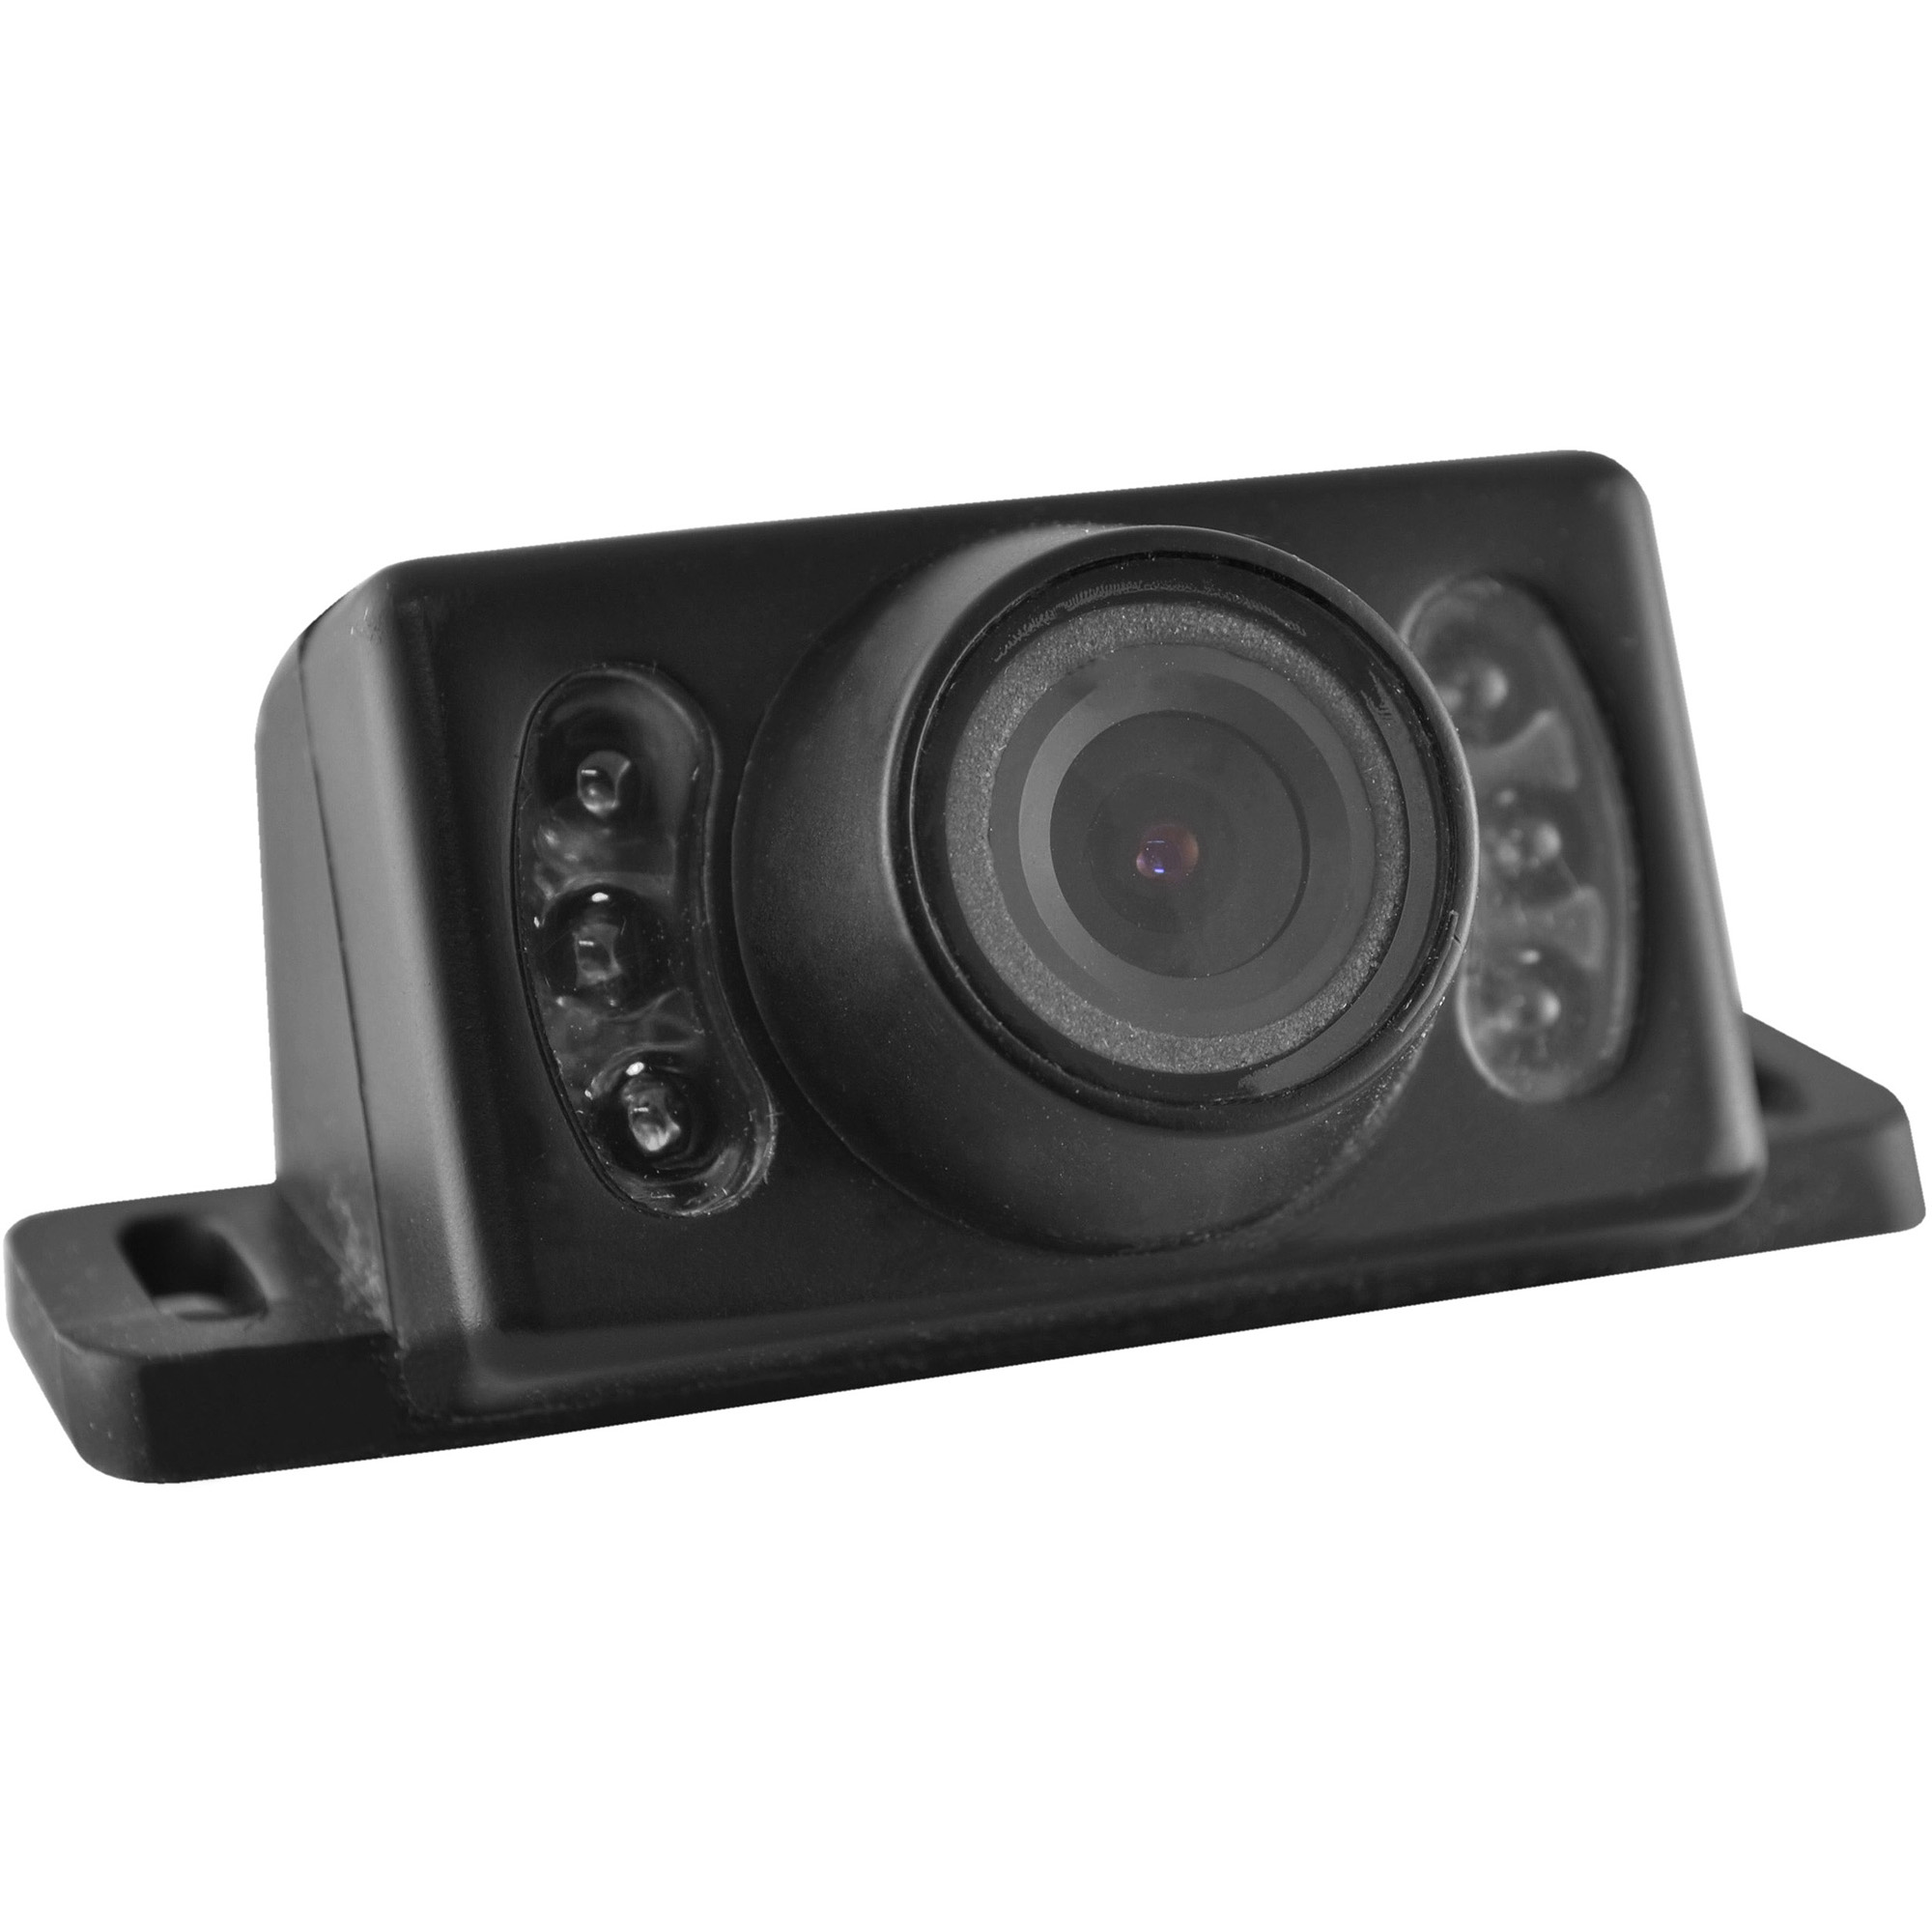 XO Vision Wide-Angle Water-Resistant Backup Camera with Night Vision